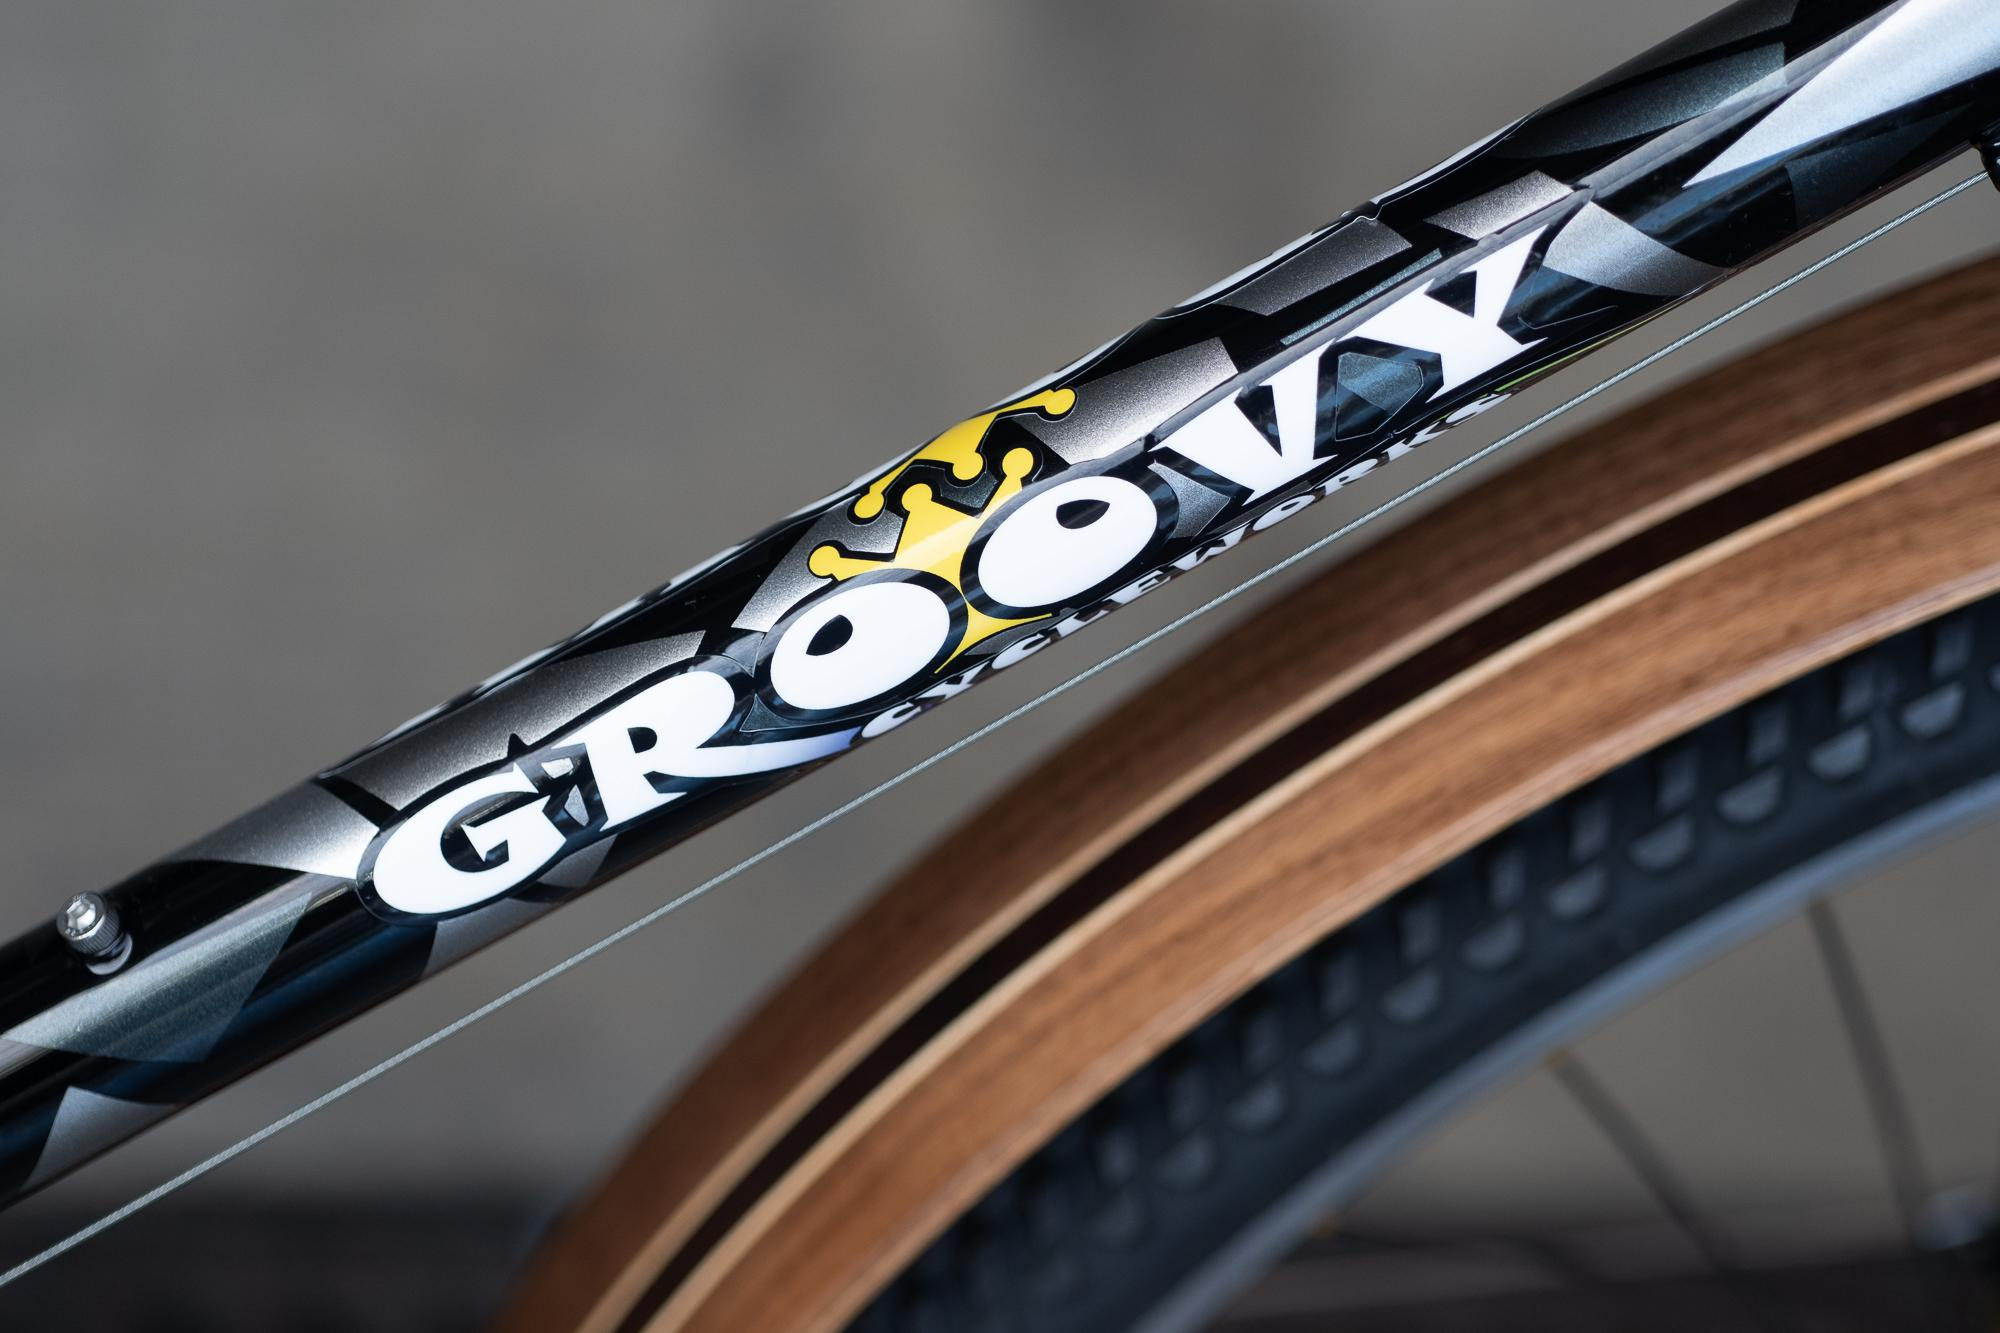 GROOVY CYCLE WORKS